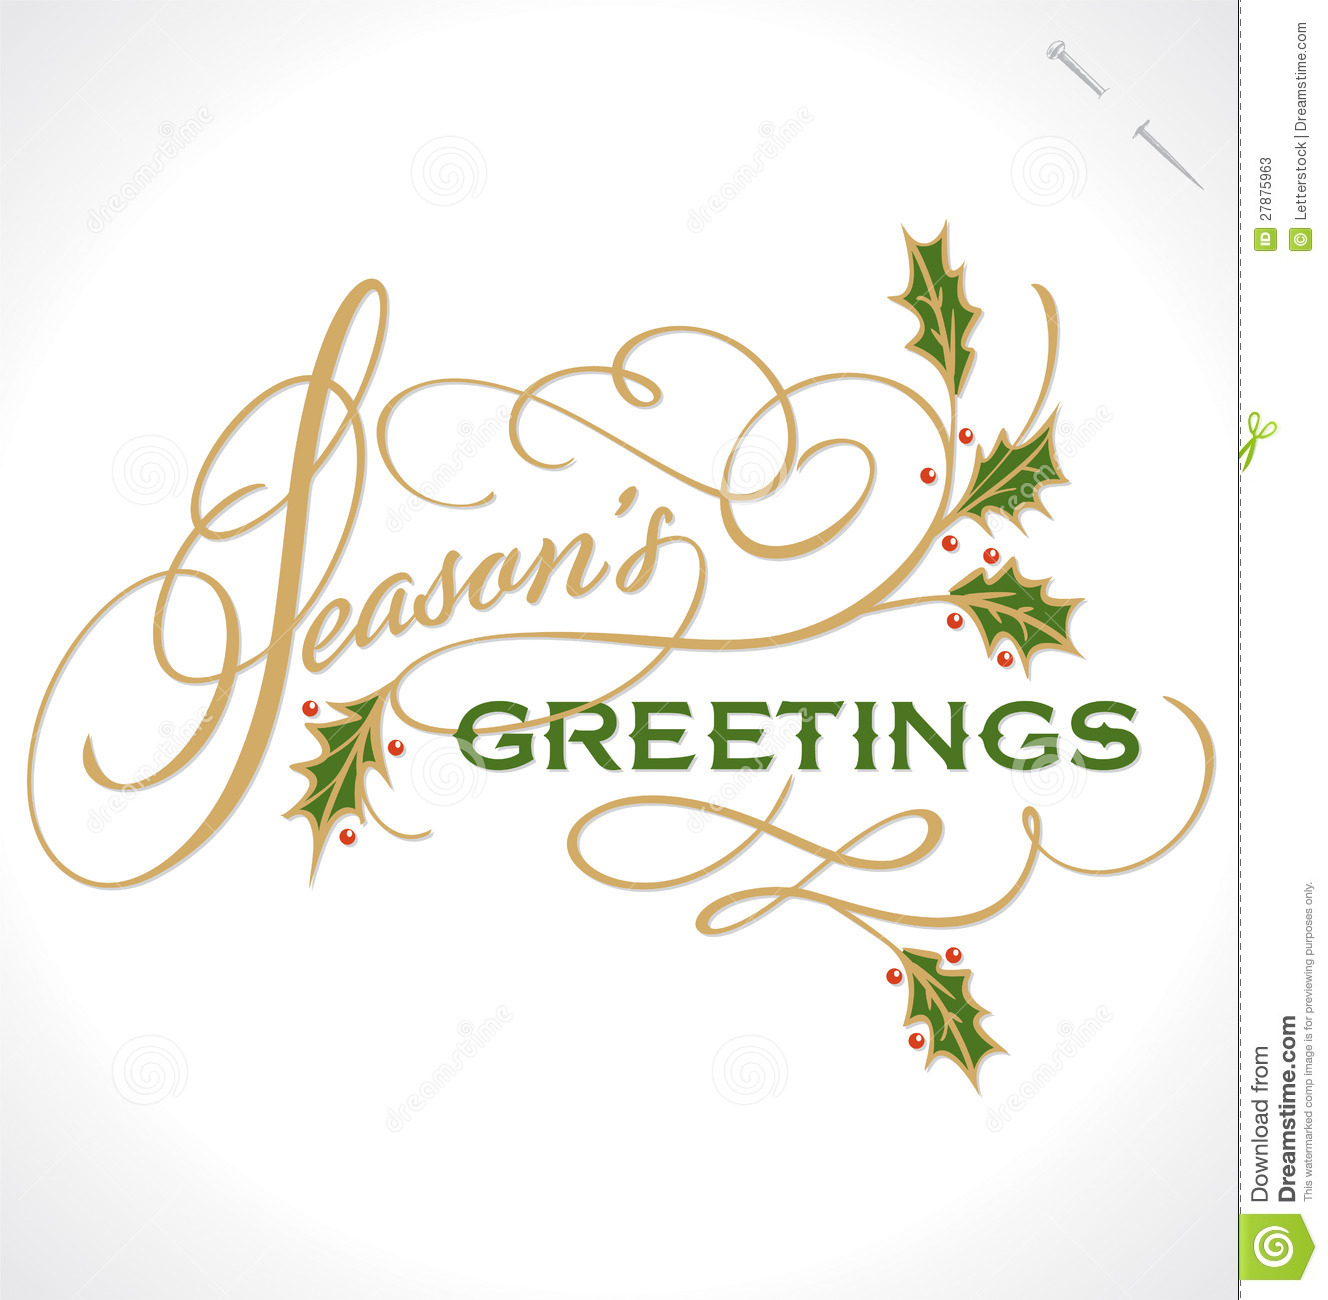 Seasons greetings hand lettering vector stock vector download seasons greetings hand lettering vector stock vector illustration of font greetings m4hsunfo